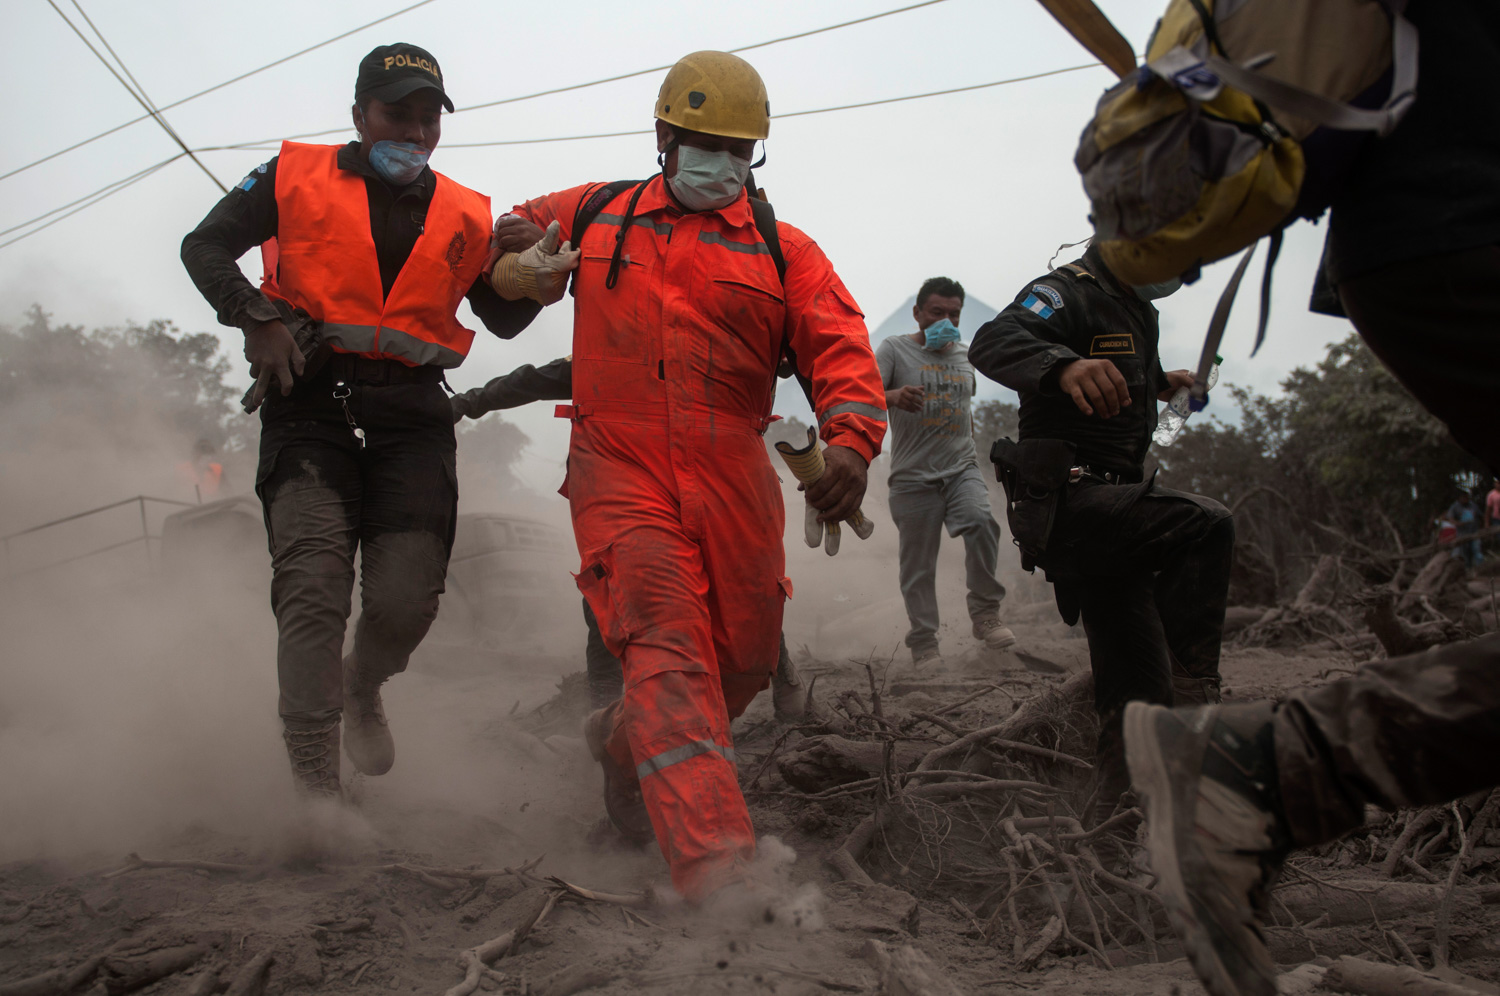 "<div class=""meta image-caption""><div class=""origin-logo origin-image none""><span>none</span></div><span class=""caption-text"">Firefighters and police are forced to evacuate a search and rescue effort as the Volcan de Fuego continues to spill out smoke and ash in Escuintla, Guatemala, Monday, June 4, 2018. (Oliver de Ros/AP Photo)</span></div>"